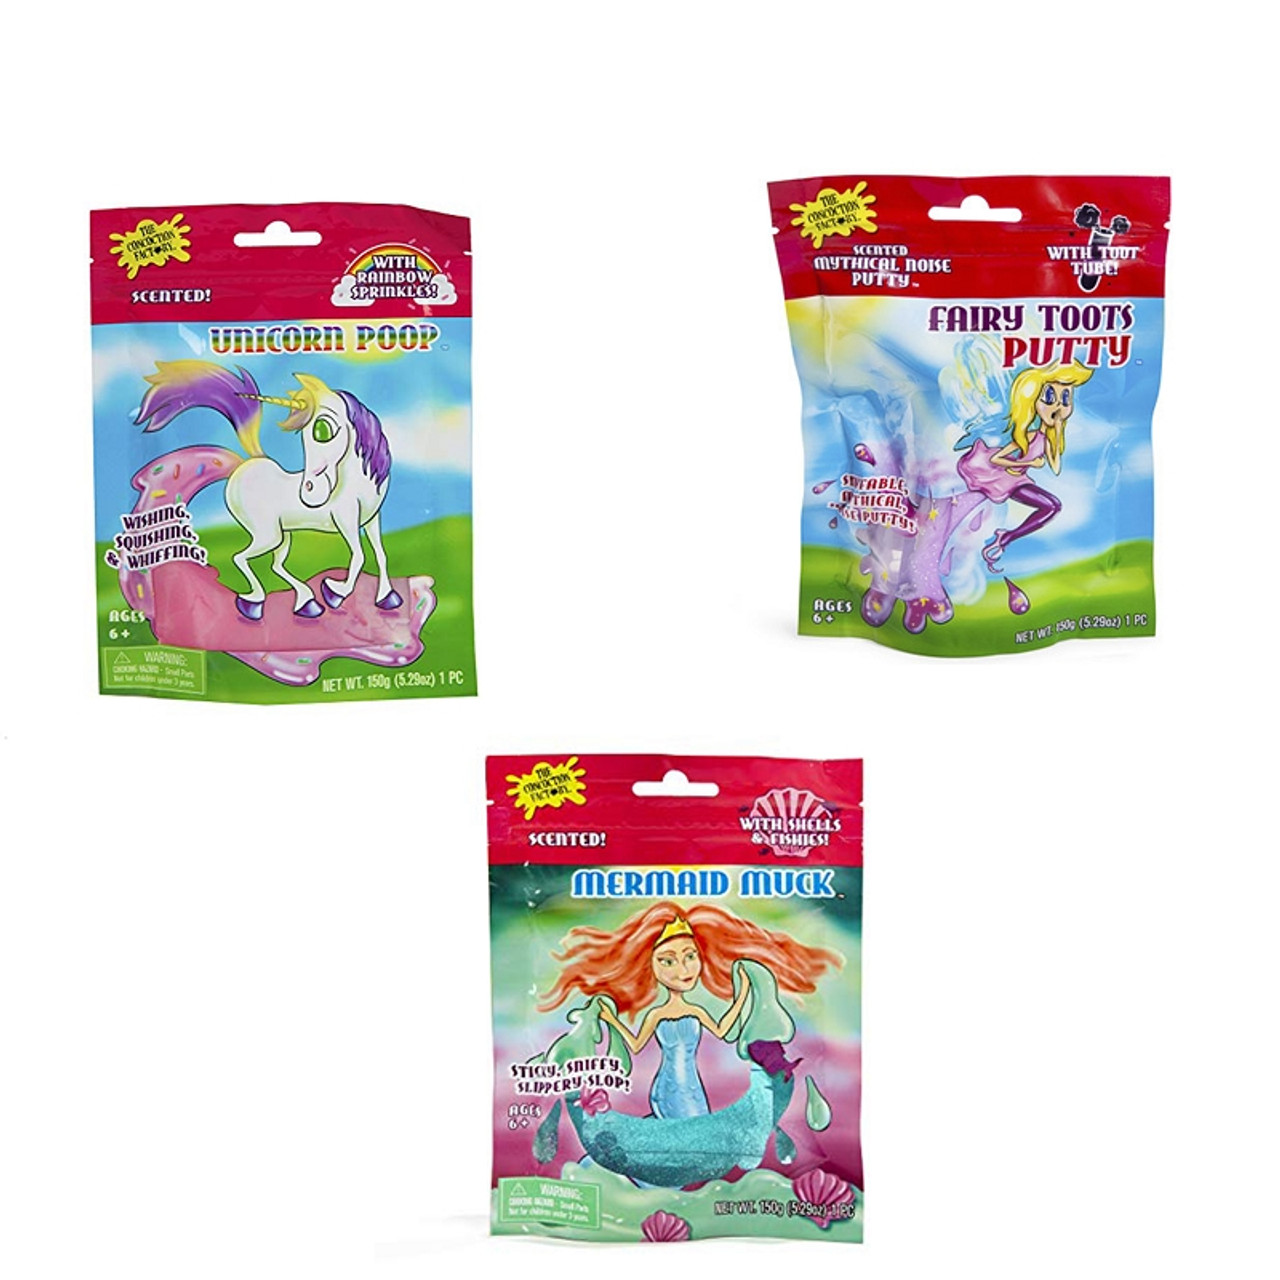 Slime Compound with Pieces Fantasma Sparkly Mermaid Muck with Shells and Fish